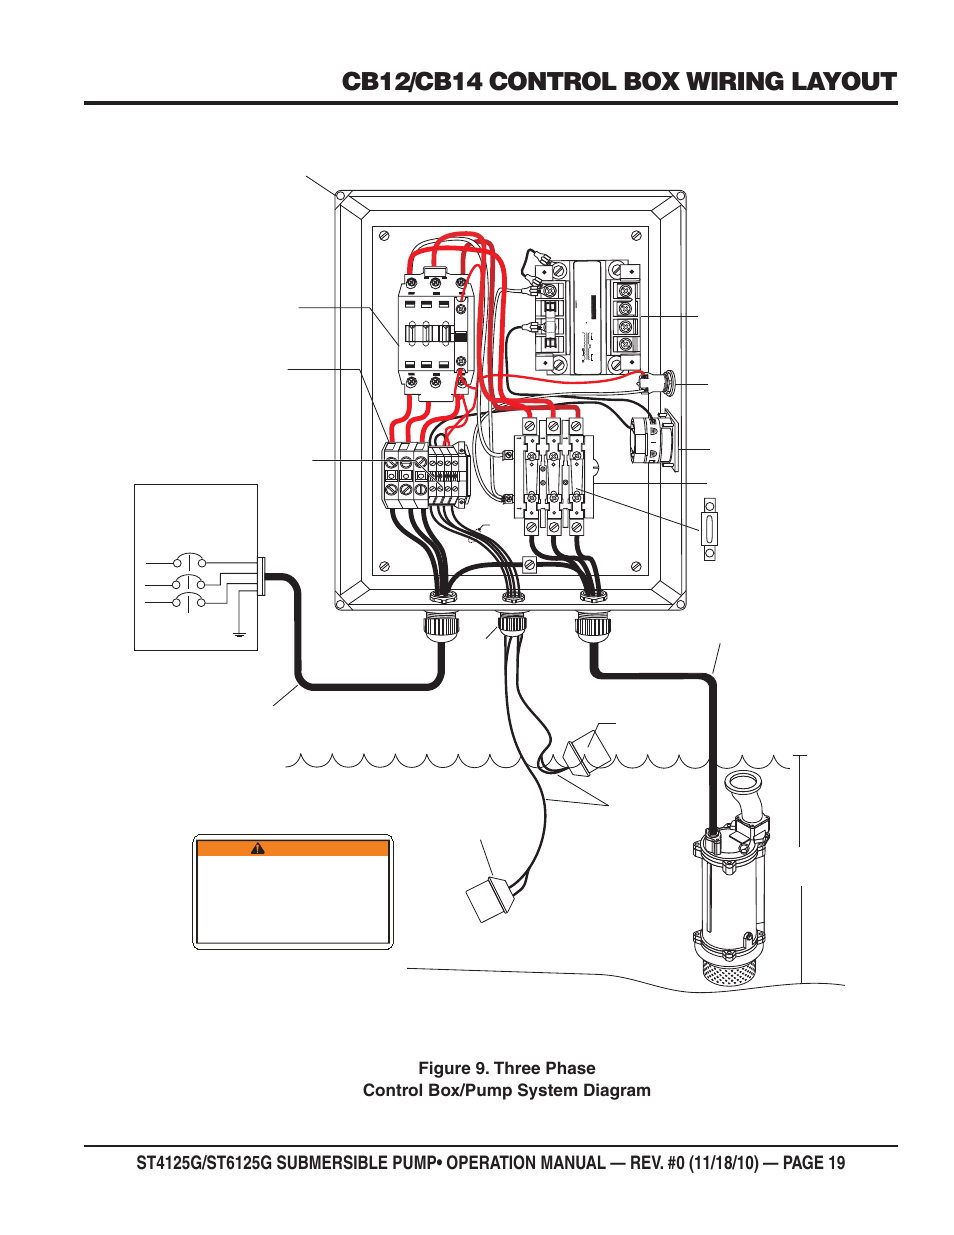 Cb12/cb14 control box wiring layout, Warning, Ac power